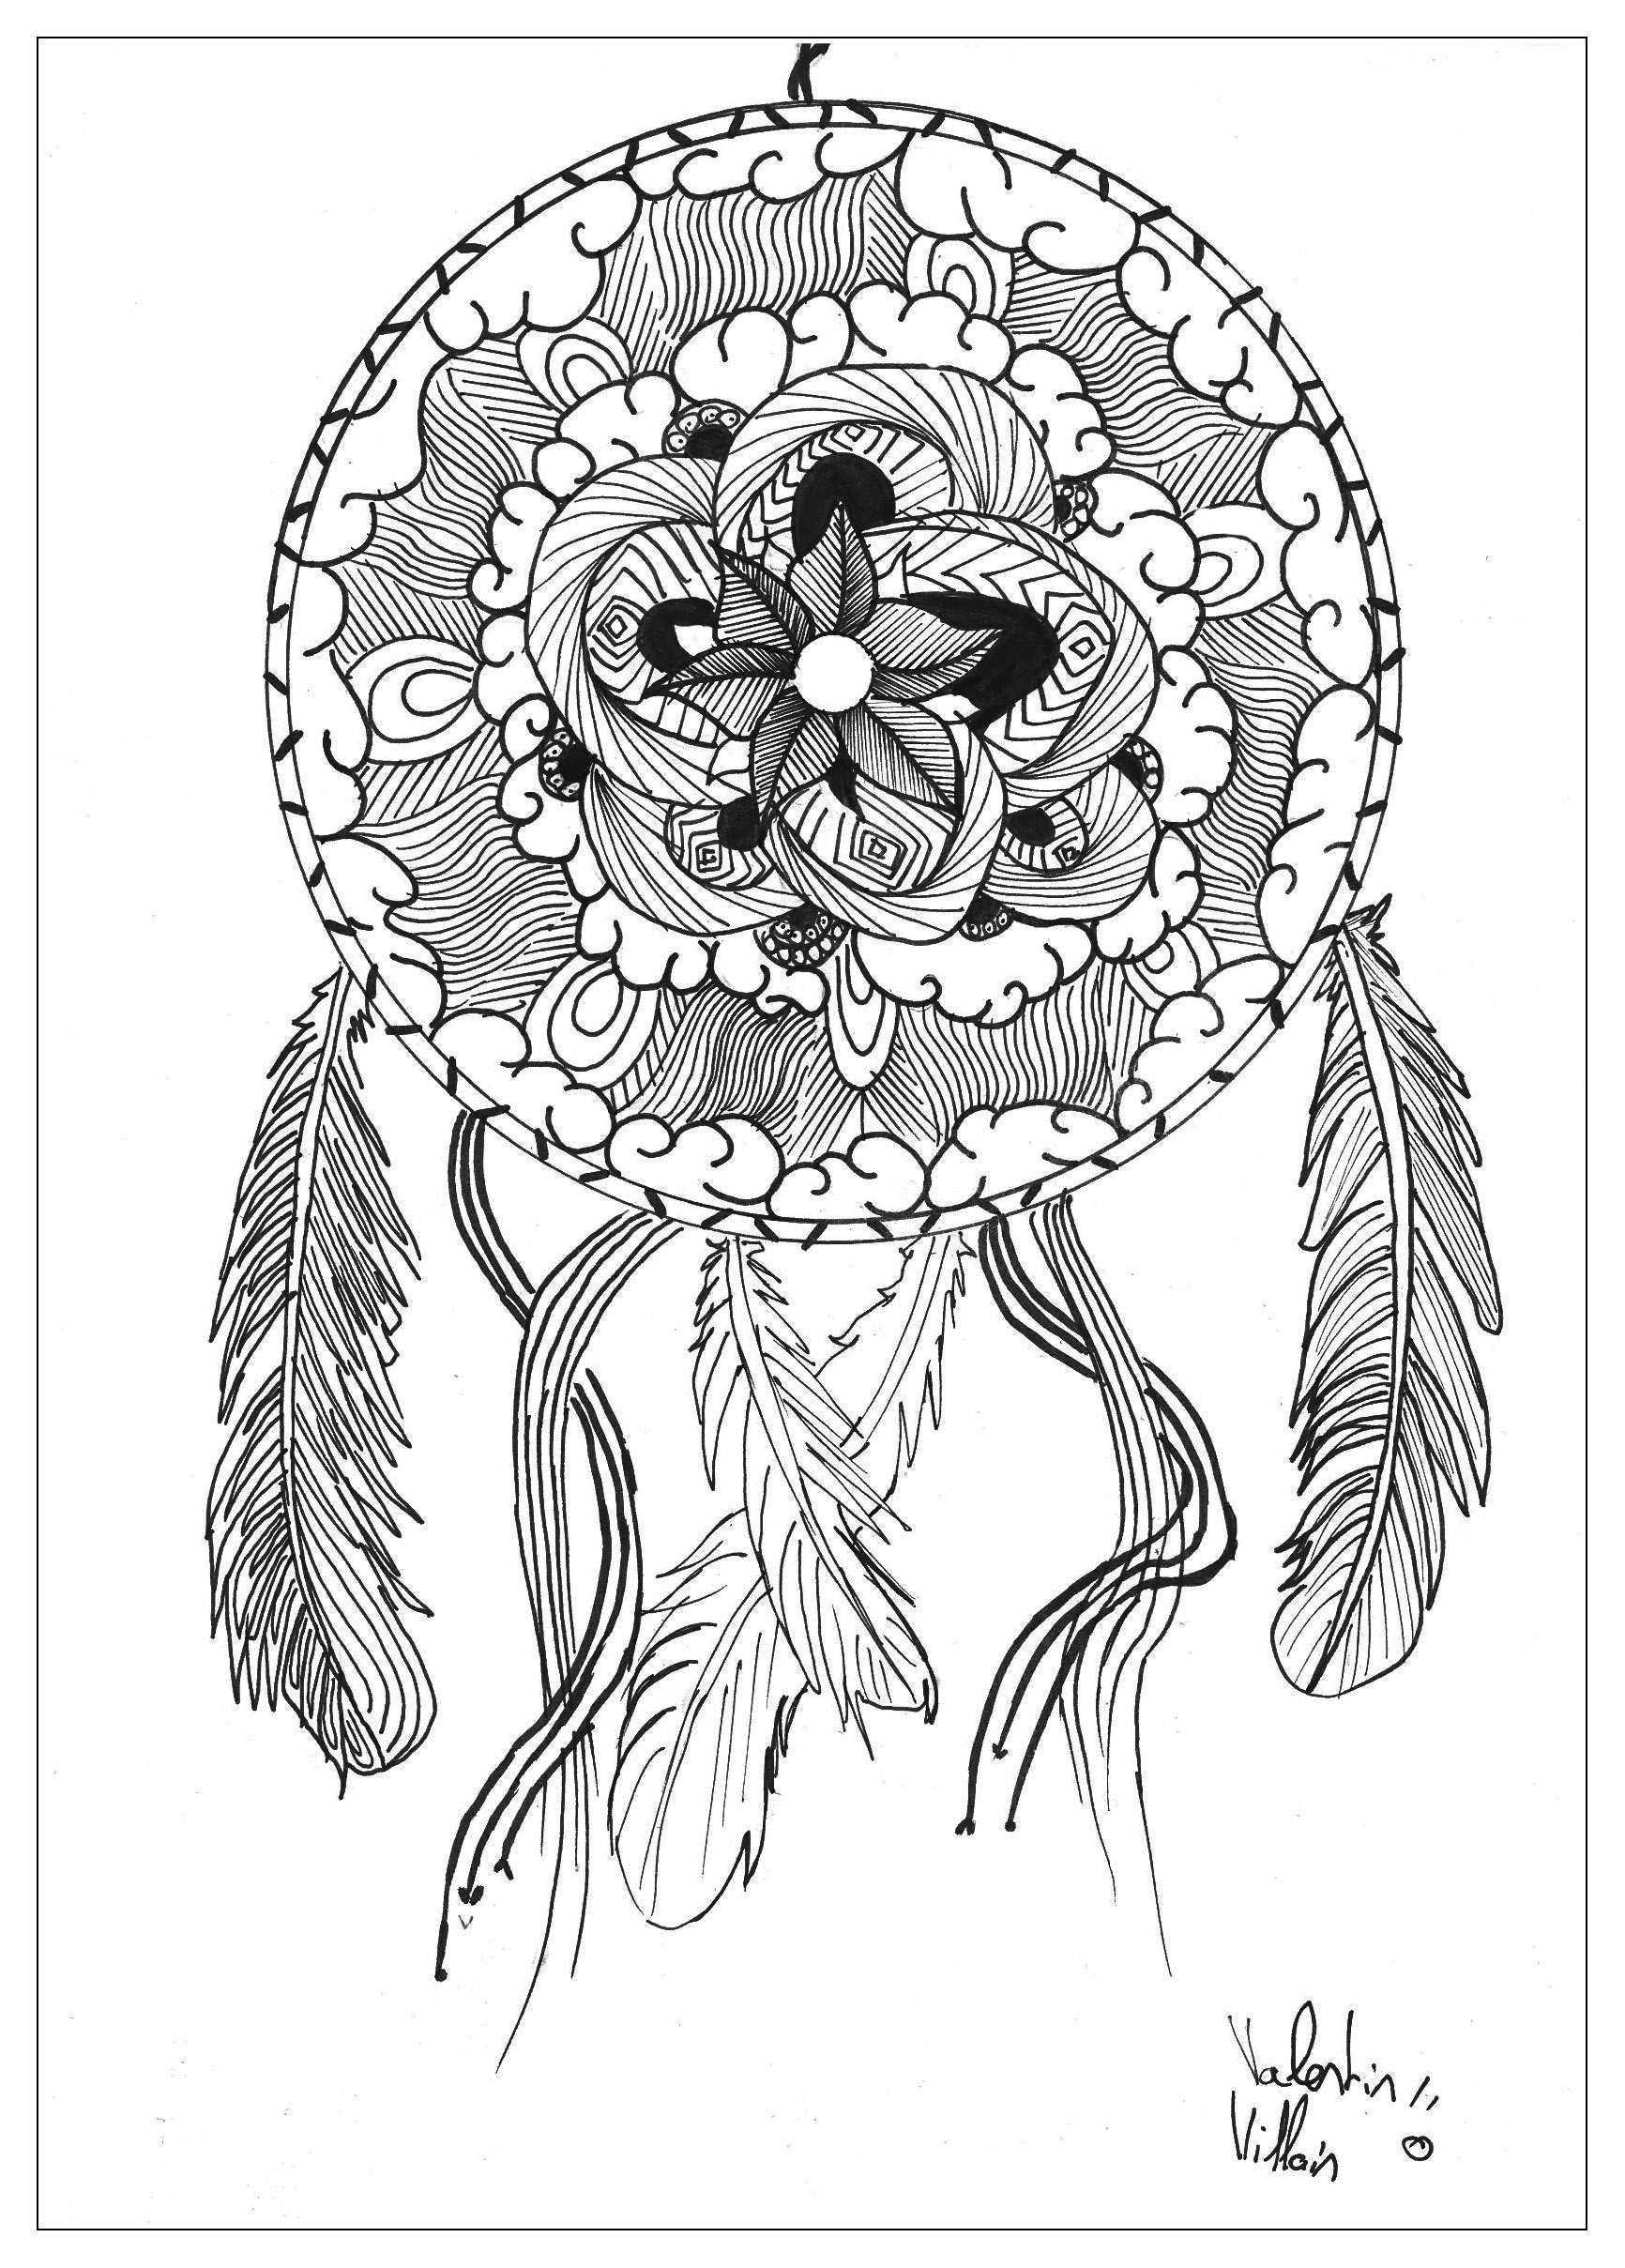 Draw Mandala Dream Catcher By Valentin Mandalas Coloring Pages